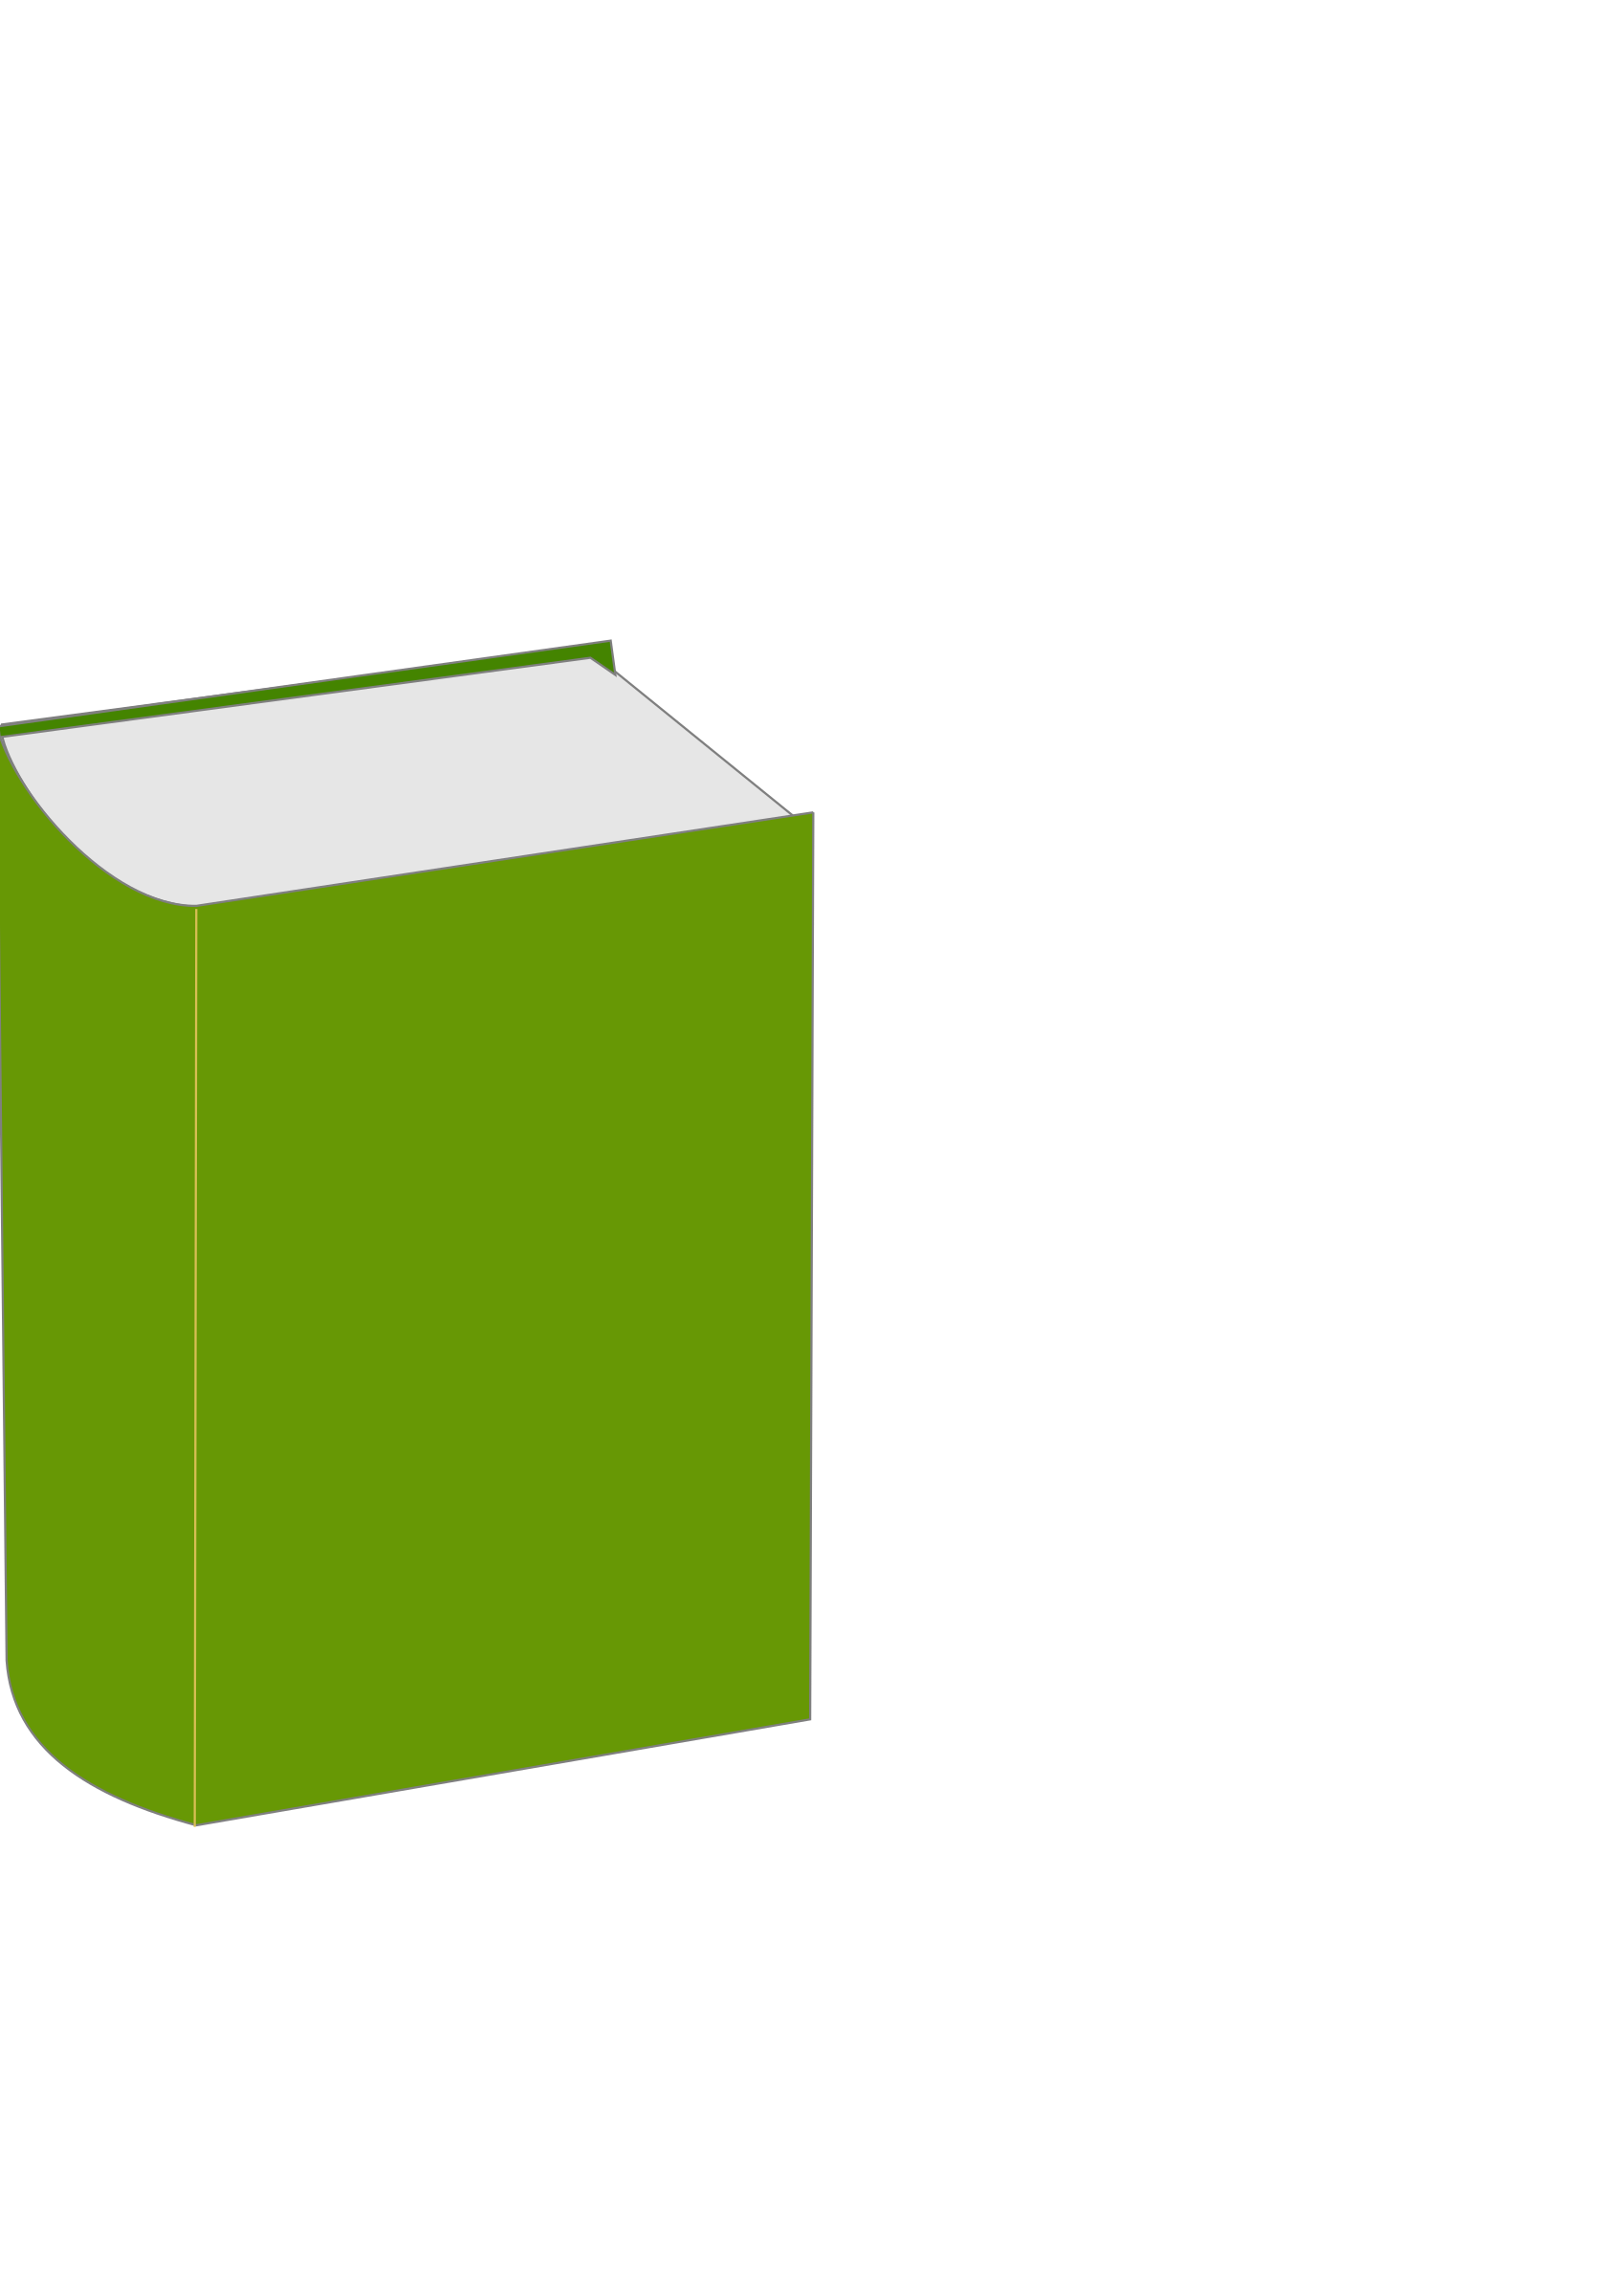 Big book clipart free download Clipart - Green Book free download